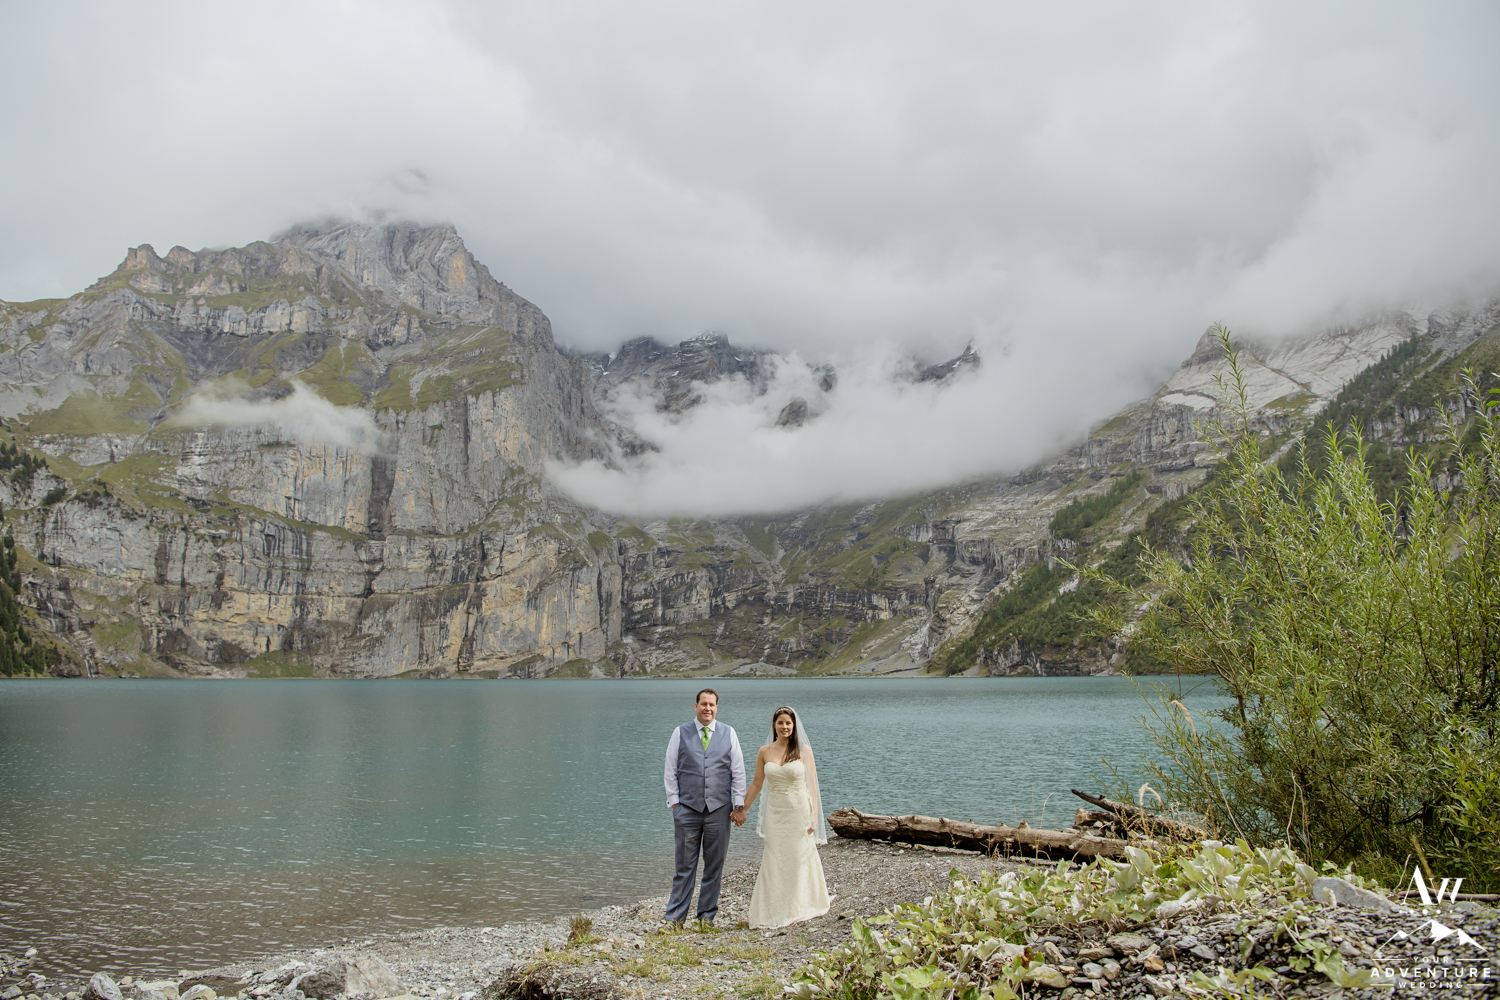 Adventurous couple in Switzerland on wedding day